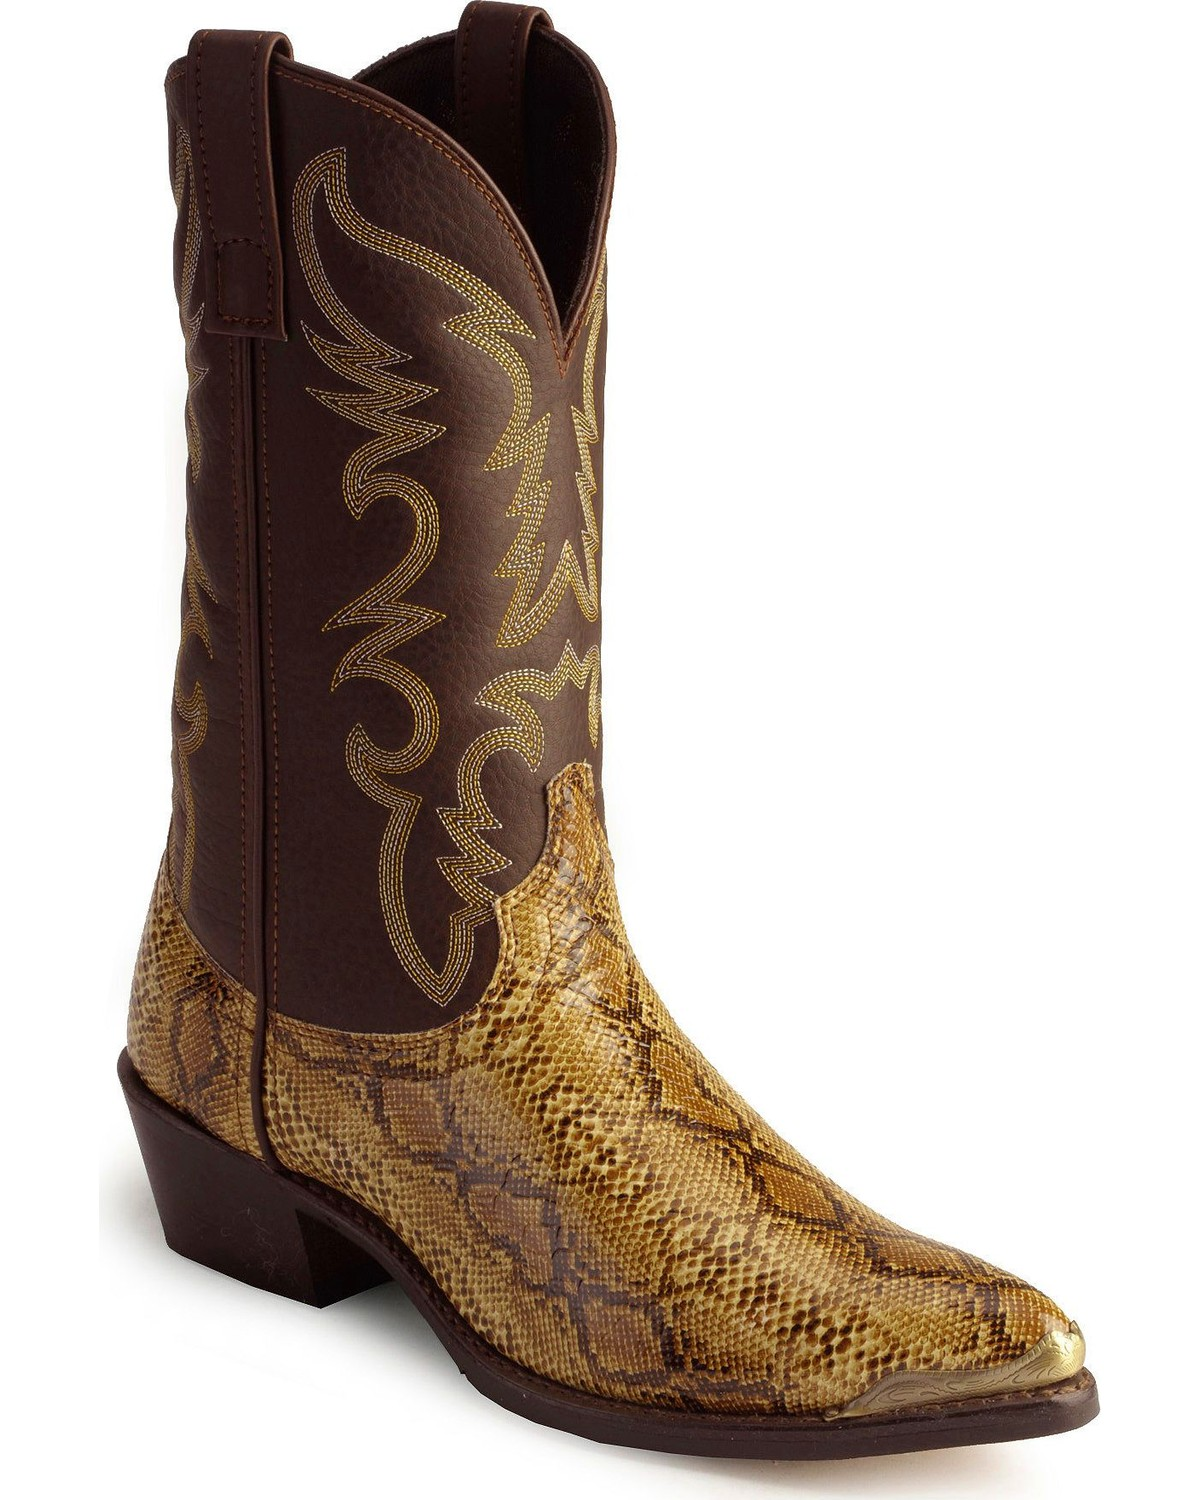 14 Eye-Catching Cowboy Boot Pictures and Images